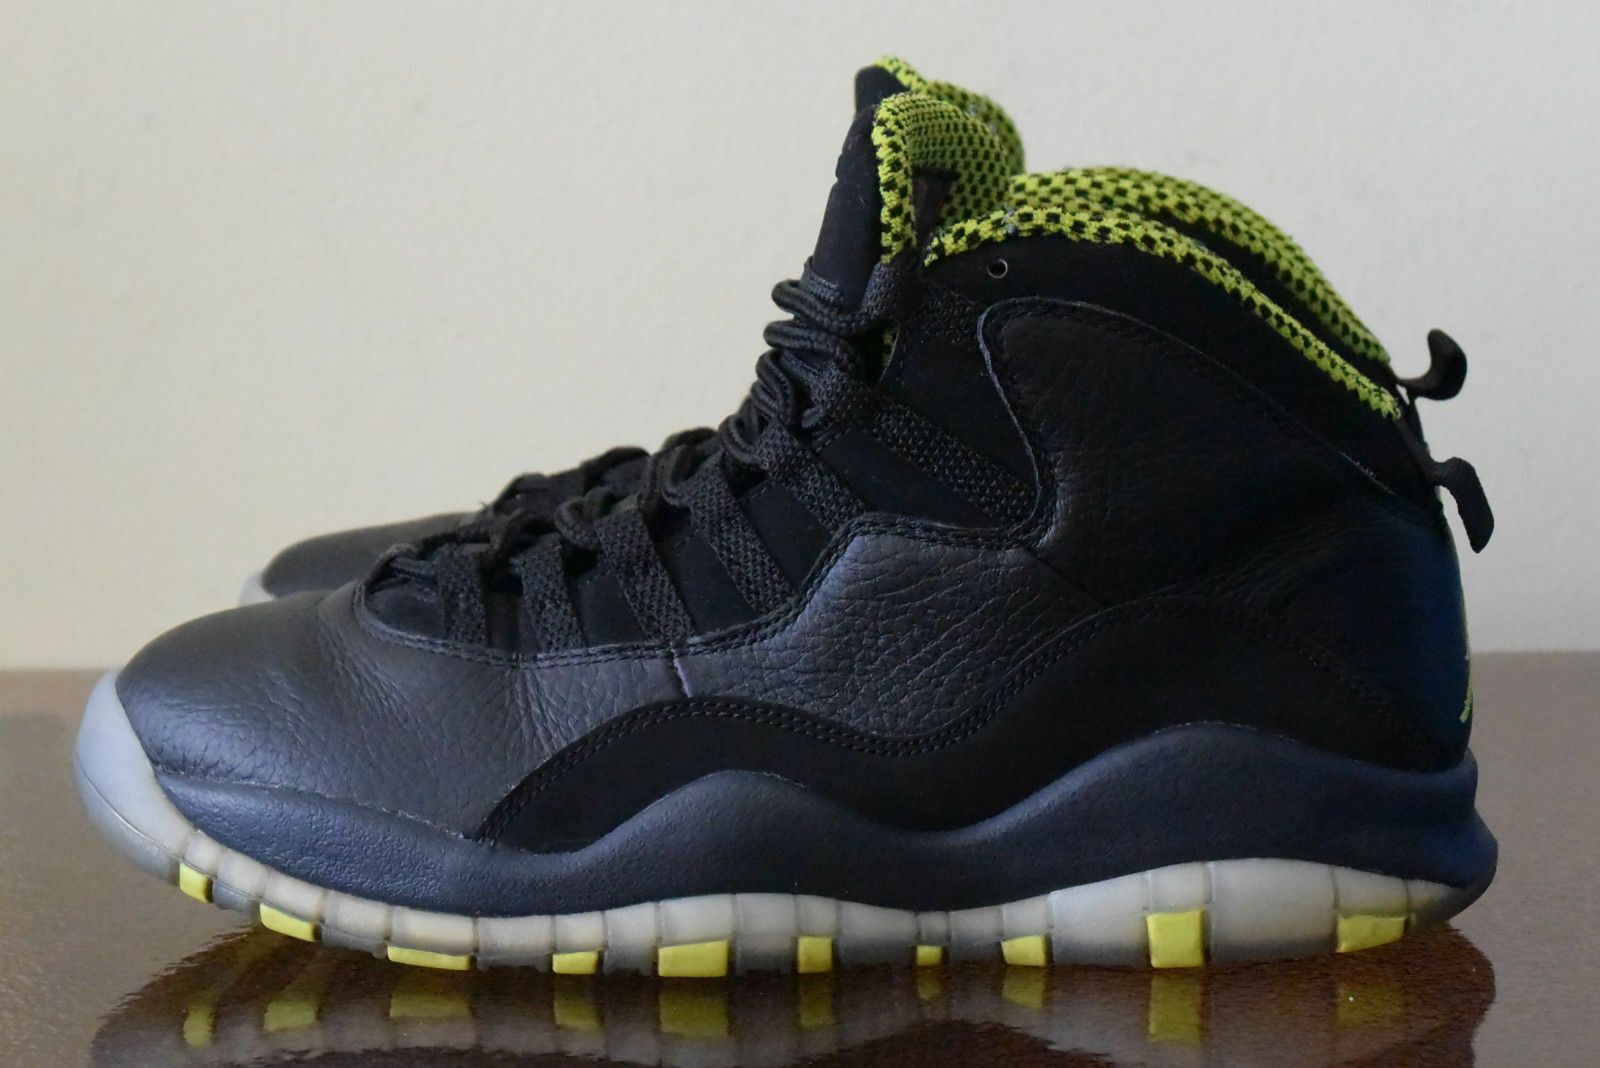 Nike Air Jordan X 10 Retro Black Venom Green-Cool 310805-033 Sz 8.5